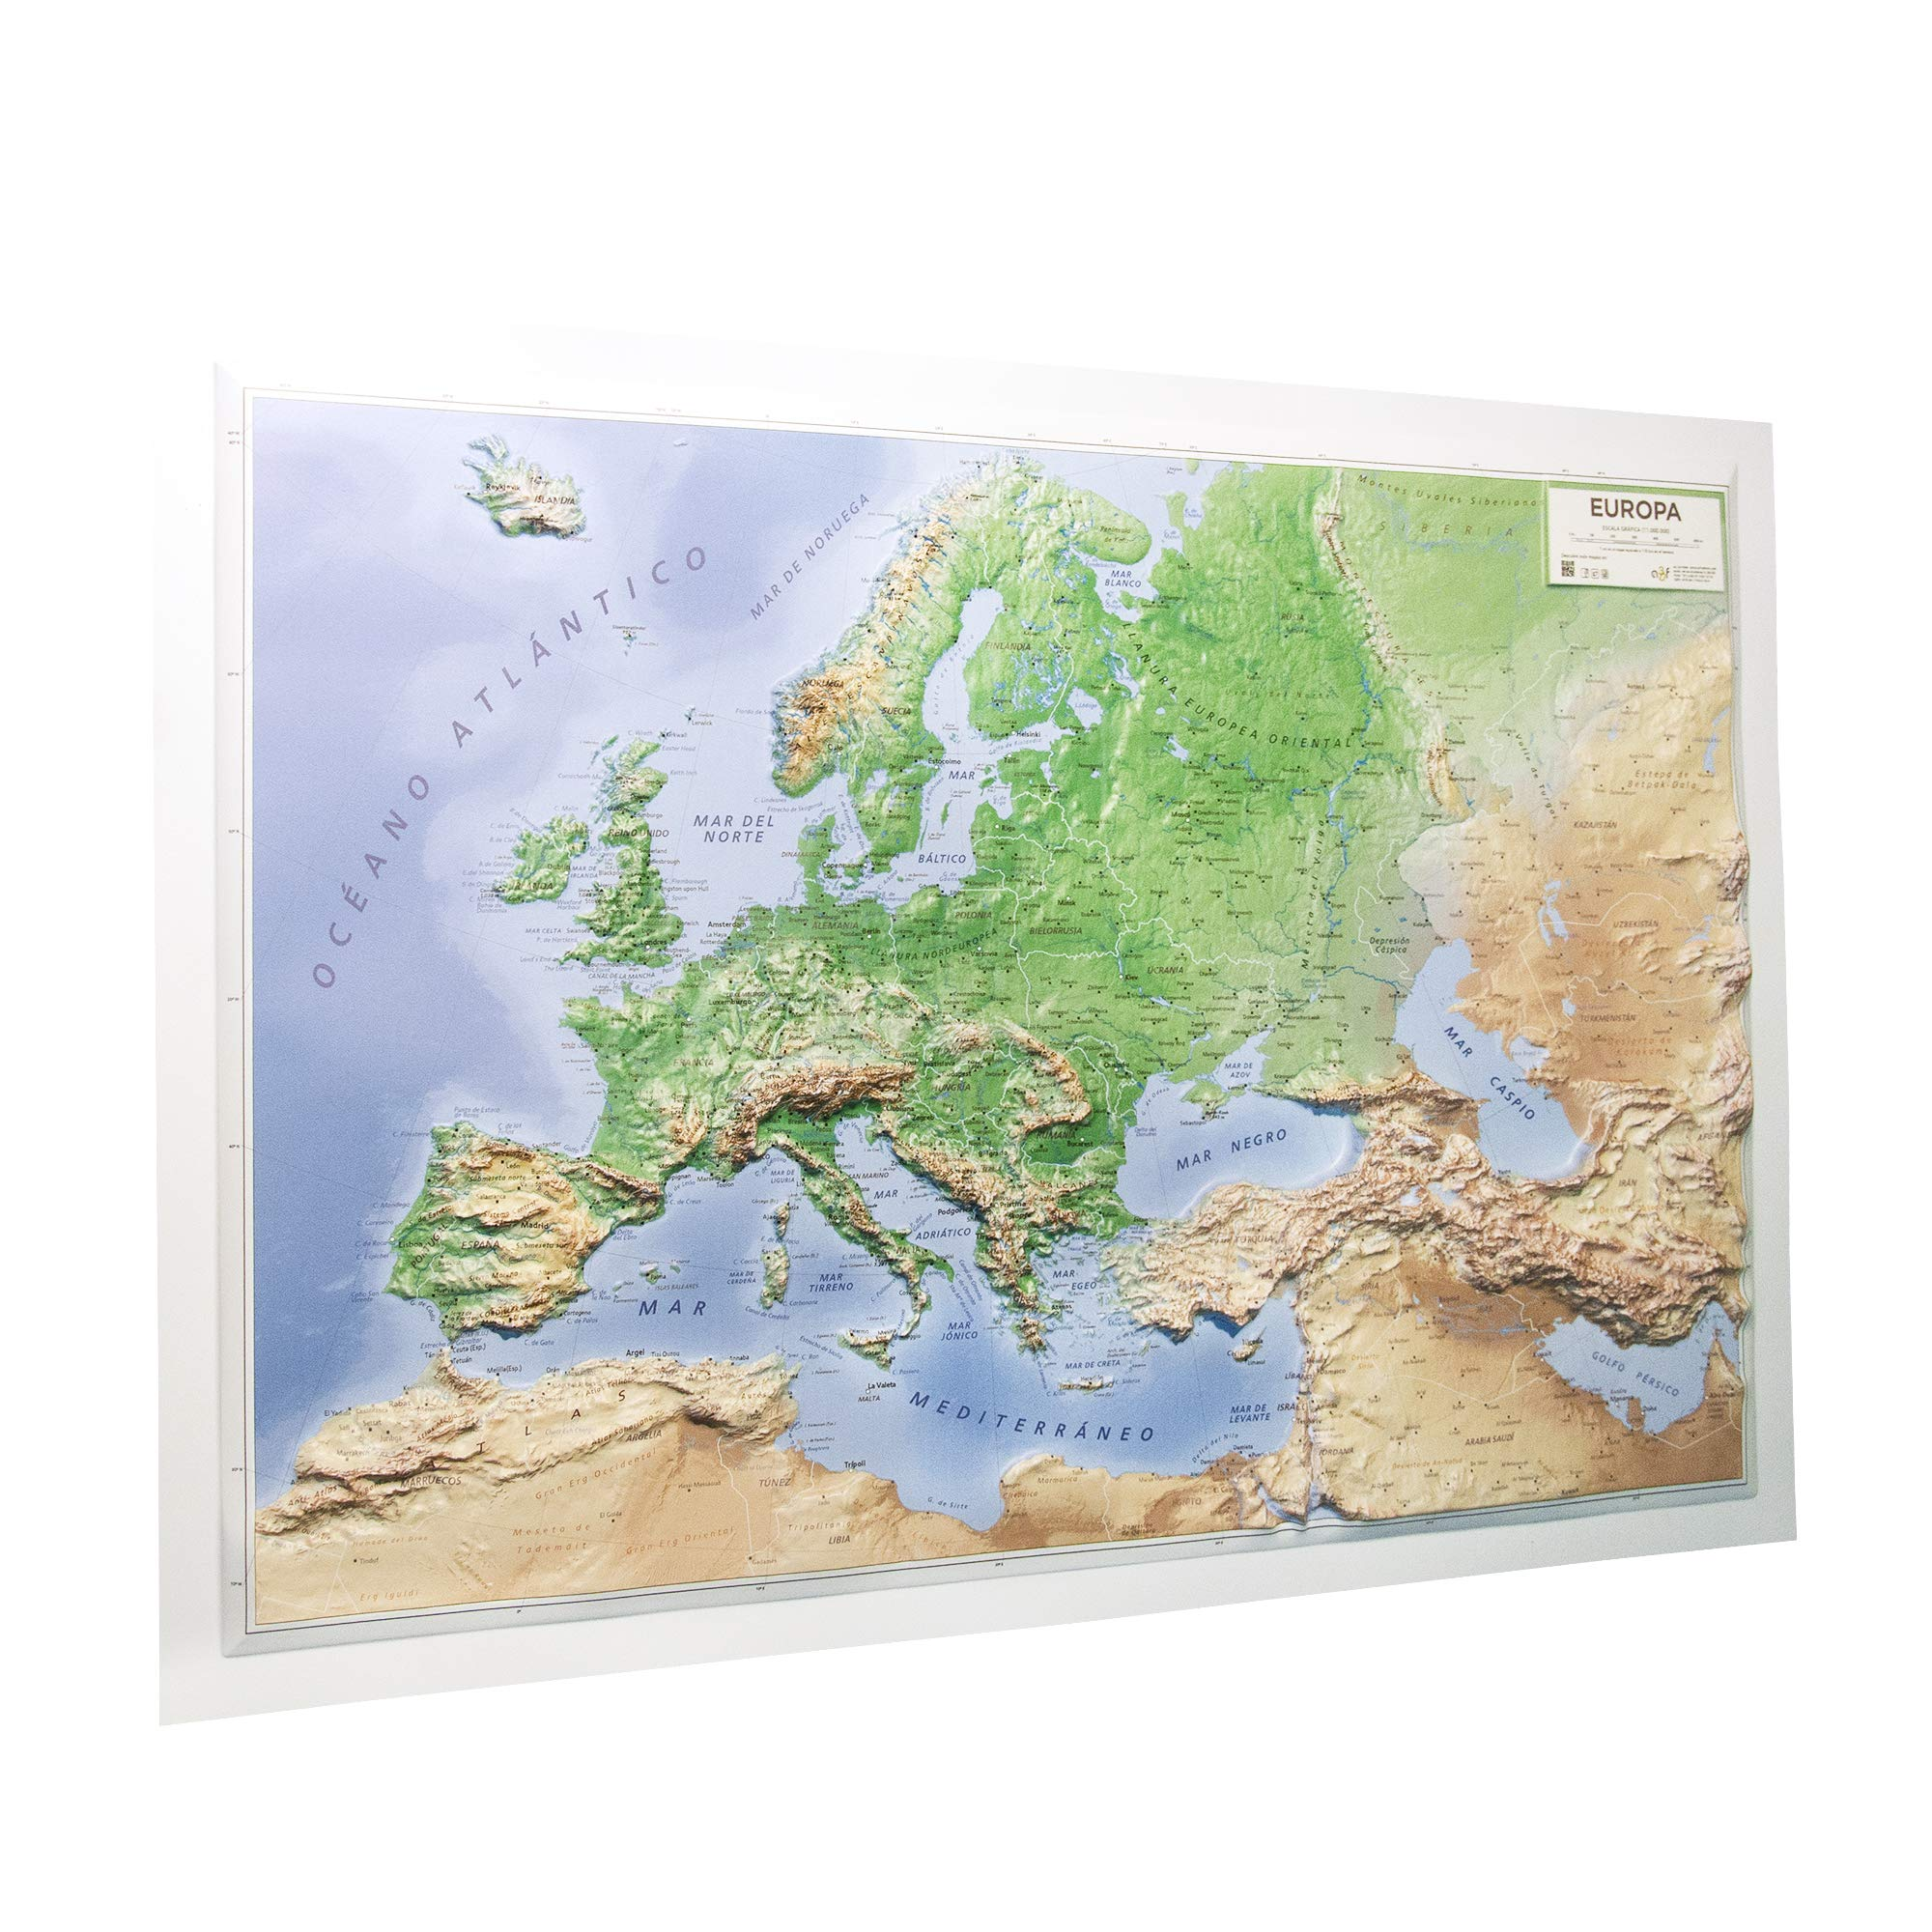 Mapa en relieve de Europa físico: Escala 1:11.000.000: Amazon.es: All 3D Form S. L.: Libros